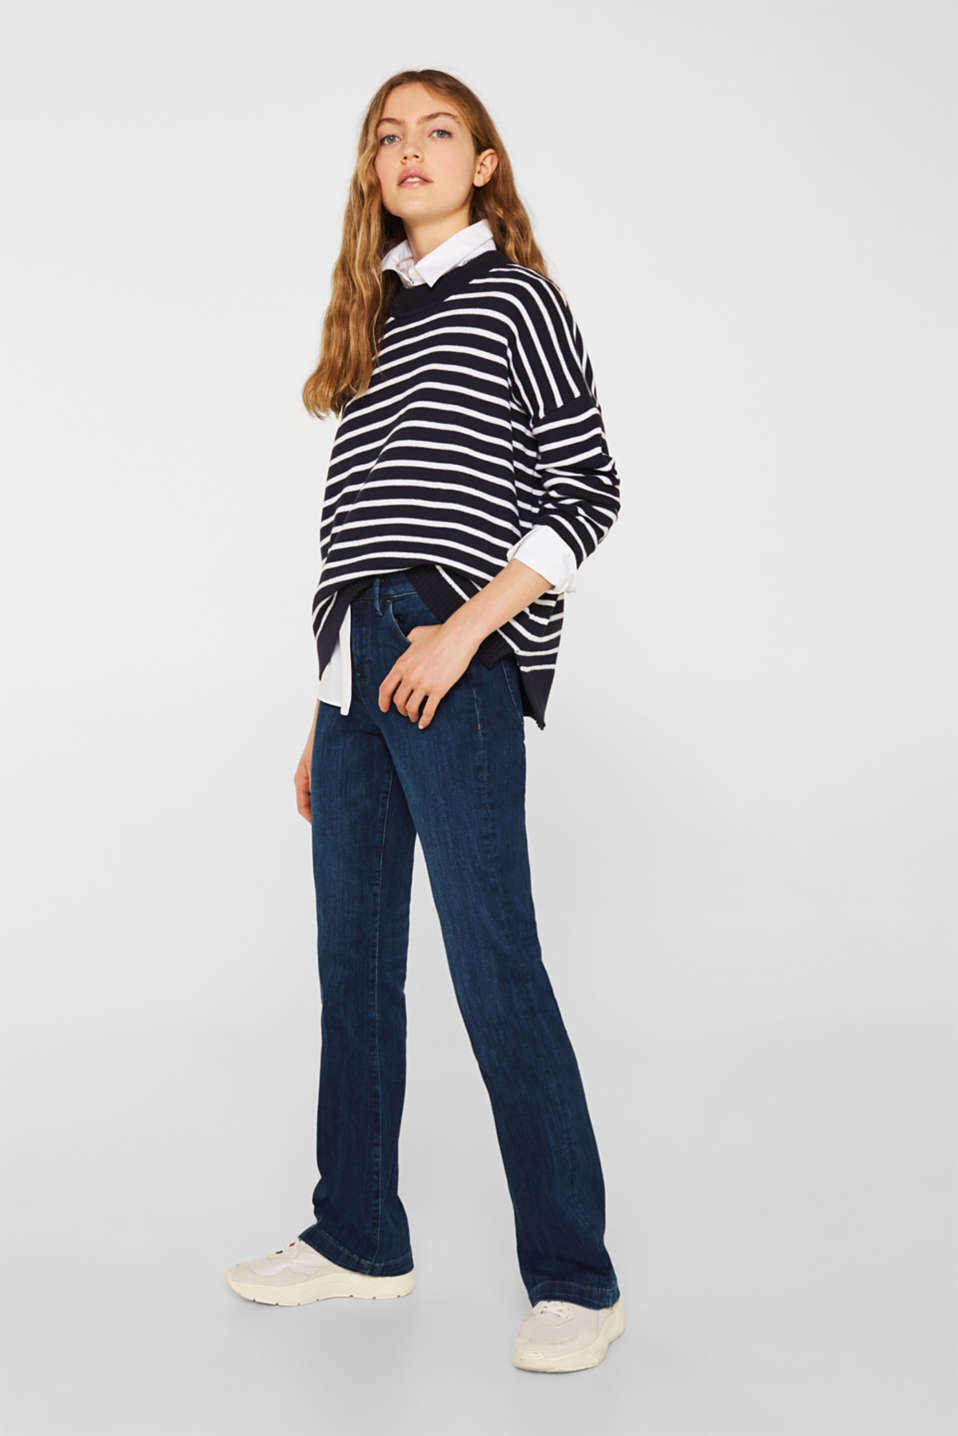 Oversized jumper with stripes, 100% cotton, NAVY 2, detail image number 1